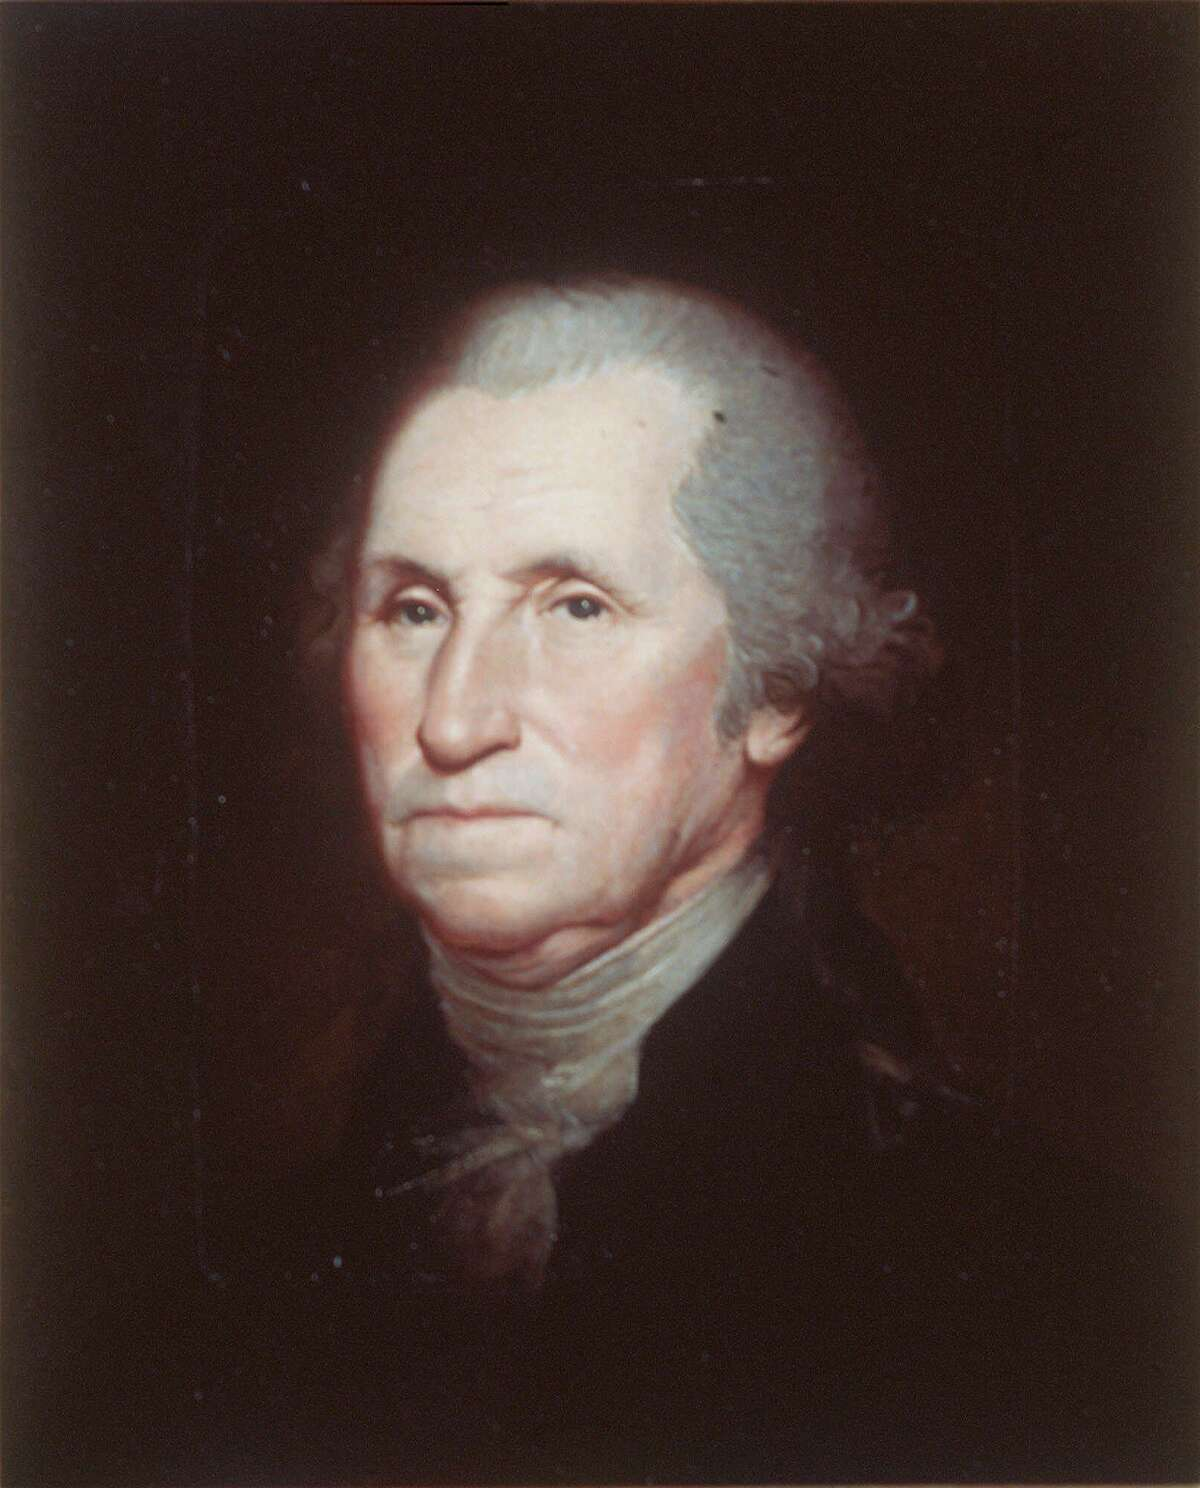 George Washington was the country's first president.